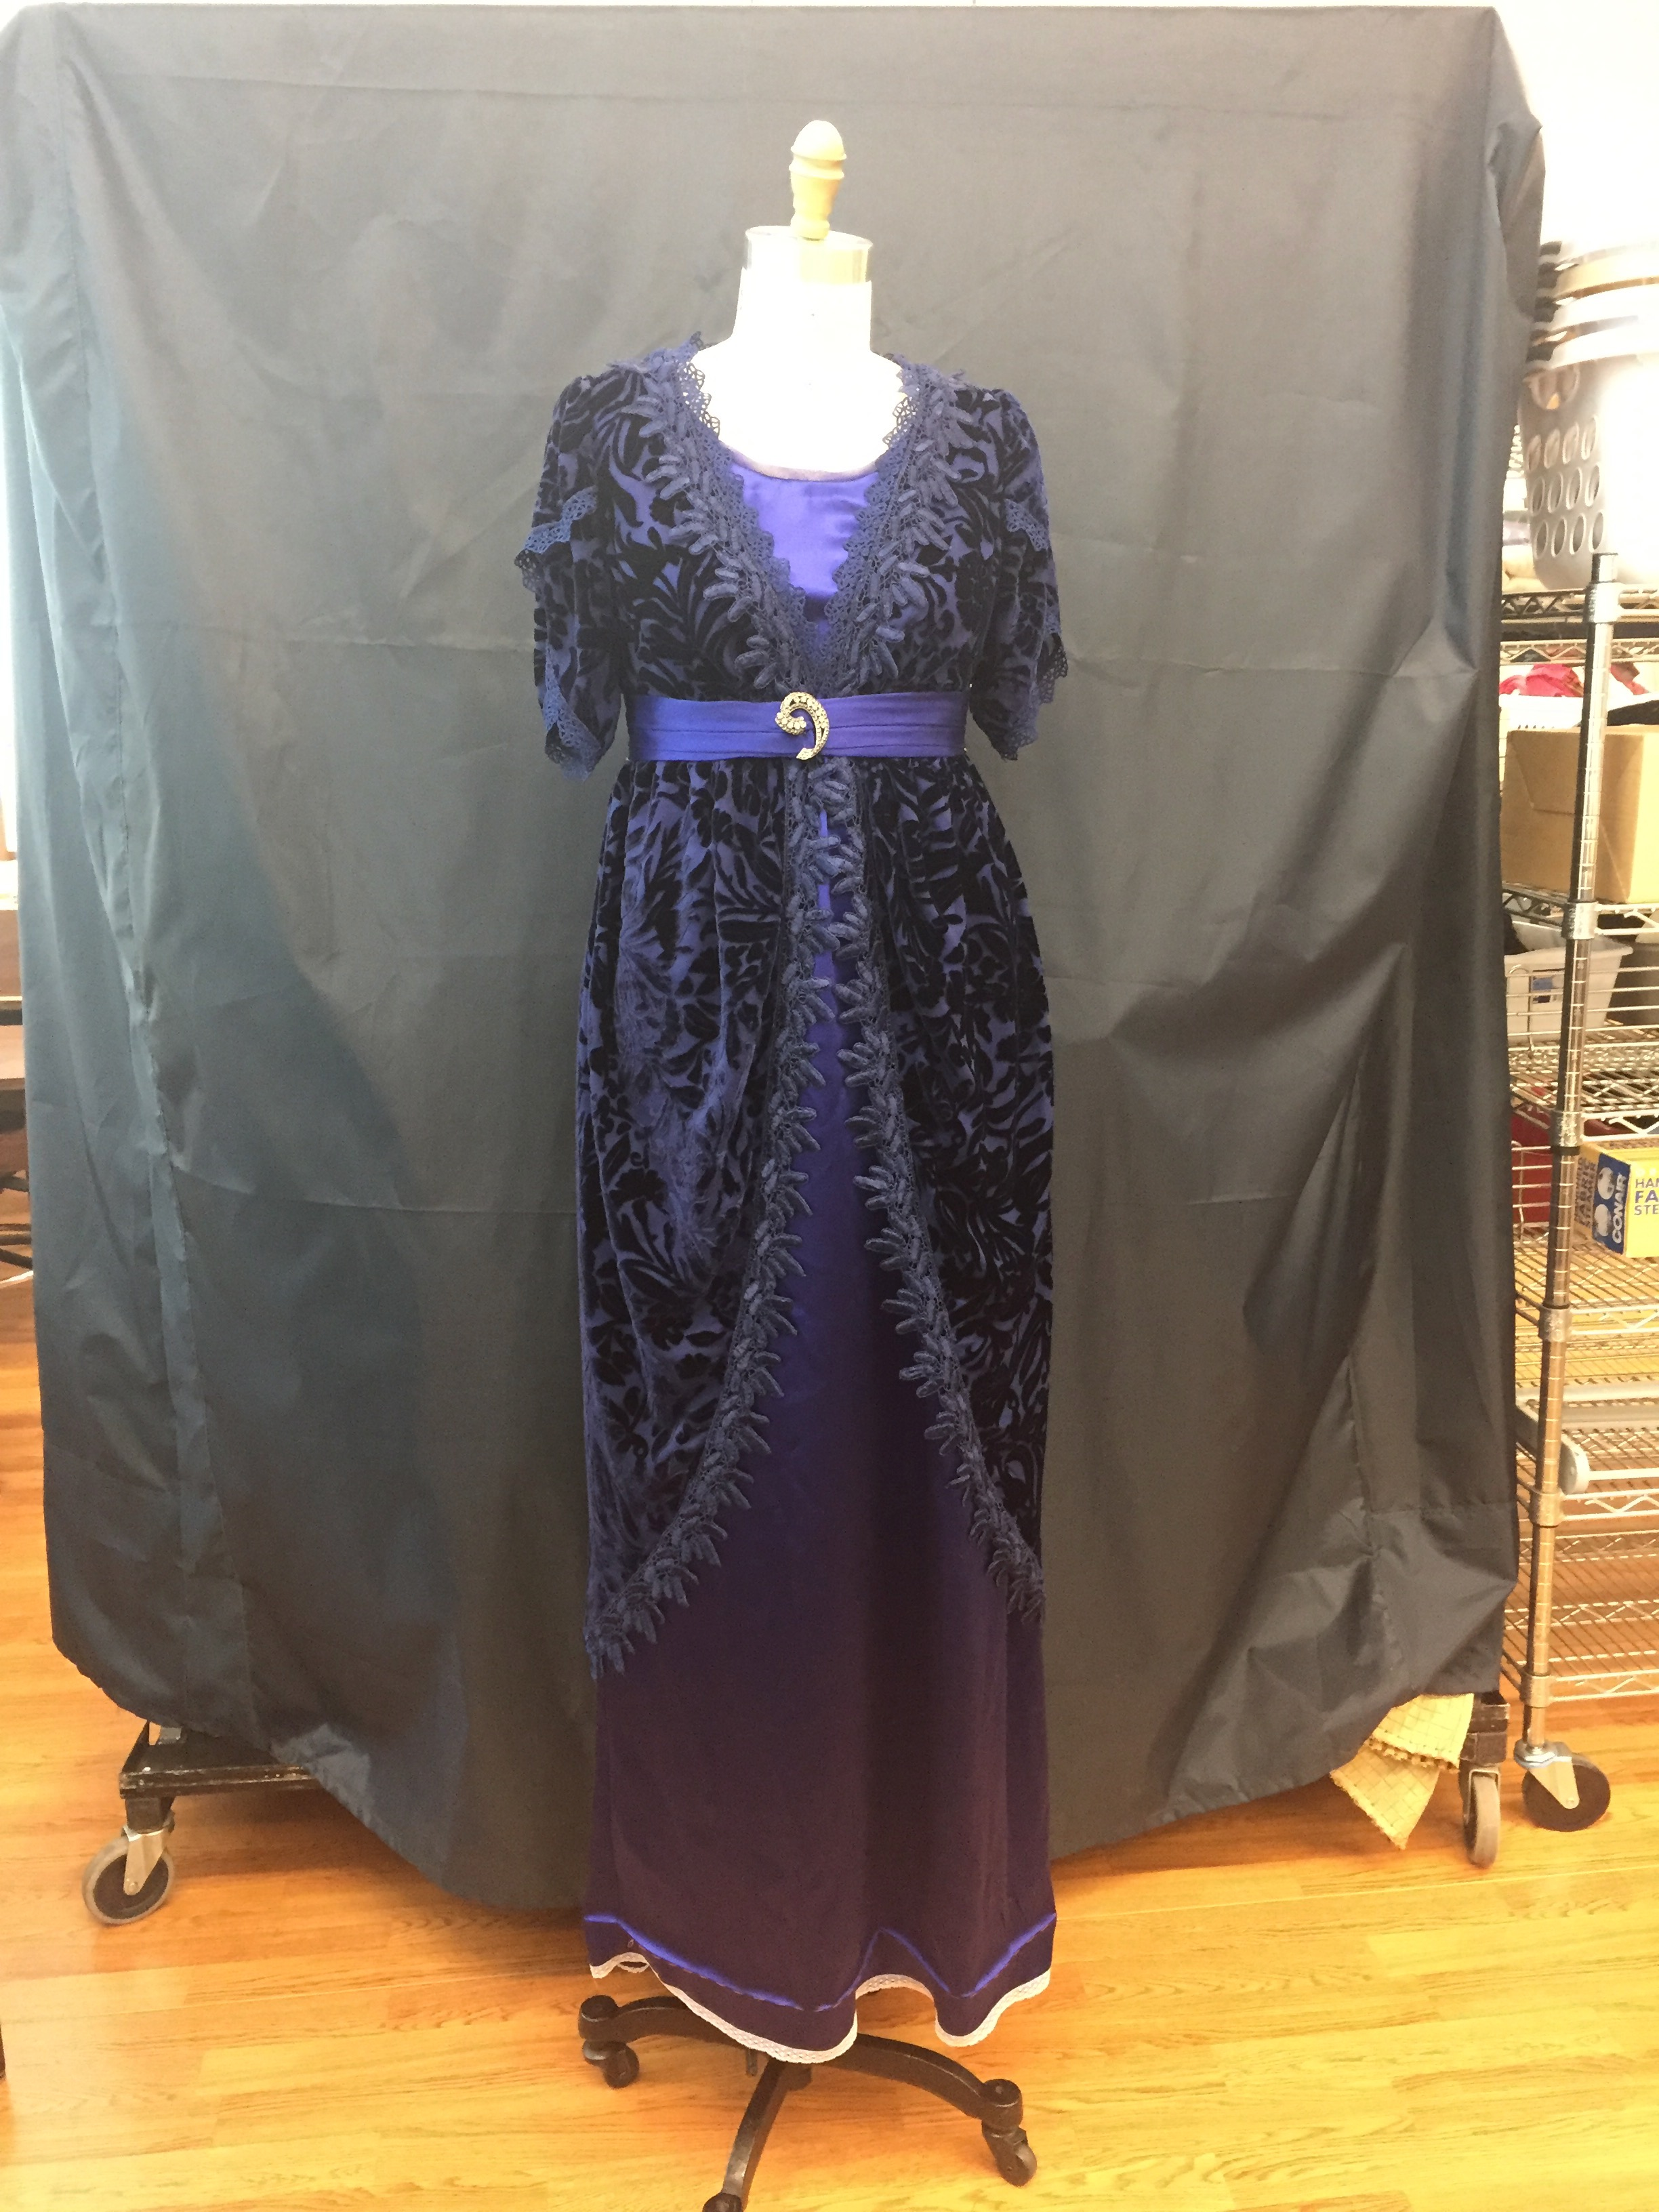 Overdress and Underdress